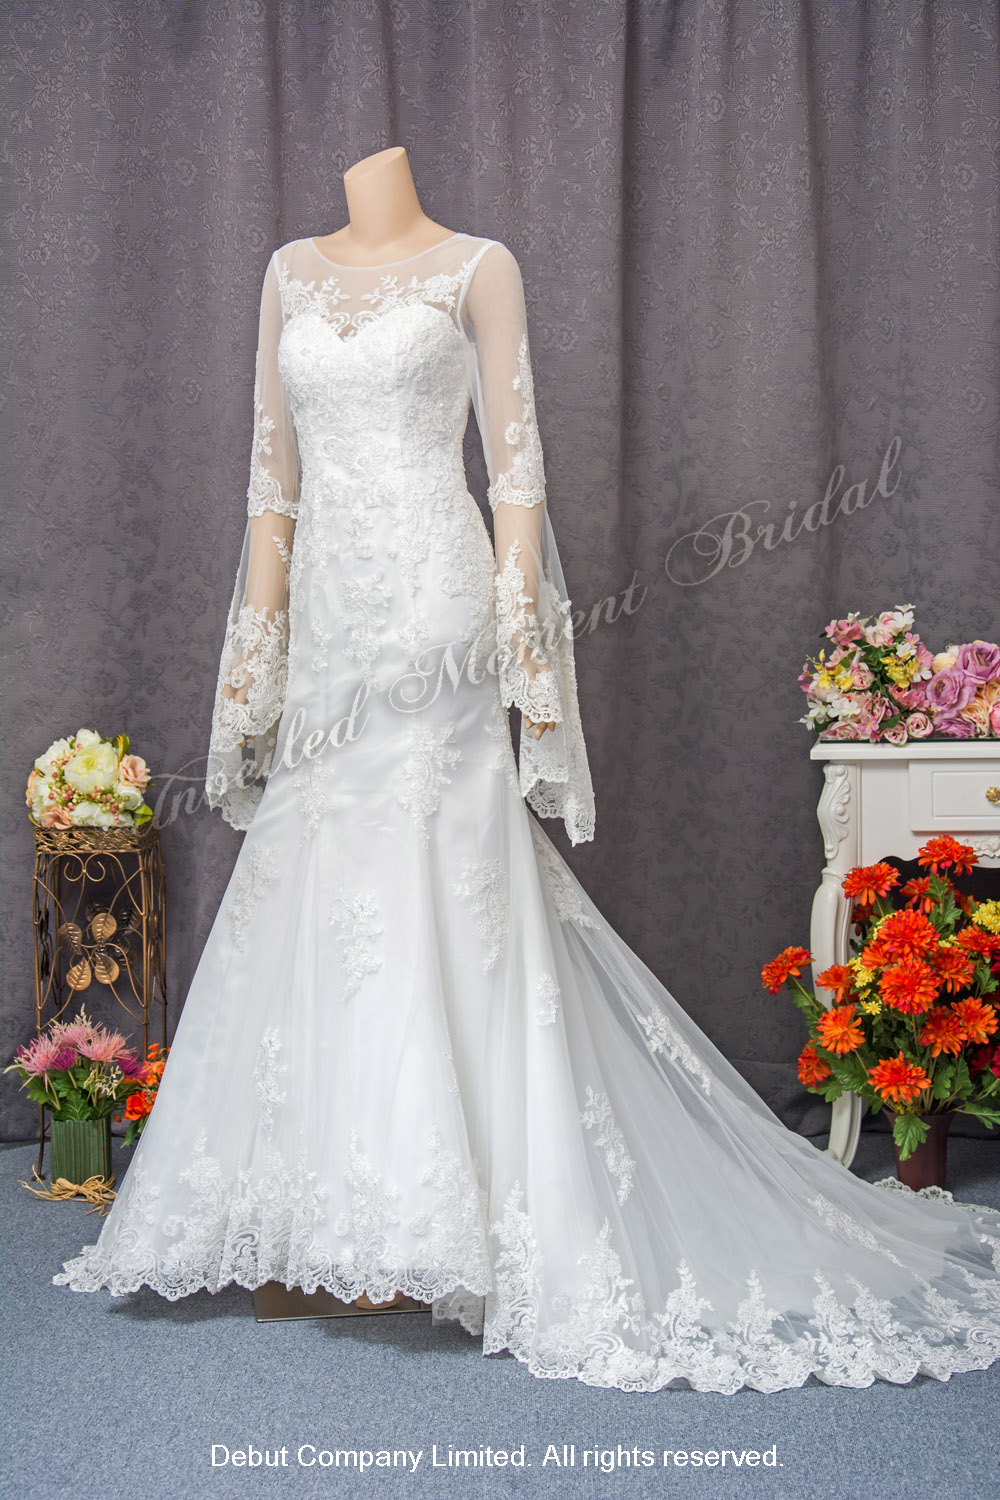 Long sleeves, mermaid bridal dress with sweetheart and see-through boat neckline, see-through low back and decorated with lace appliques cathedral train. 長袖, 心形胸, 透視薄紗圓領, 蕾絲釘珠, 透視美背, 宮廷蕾絲花邊拖尾, 魚尾款婚紗